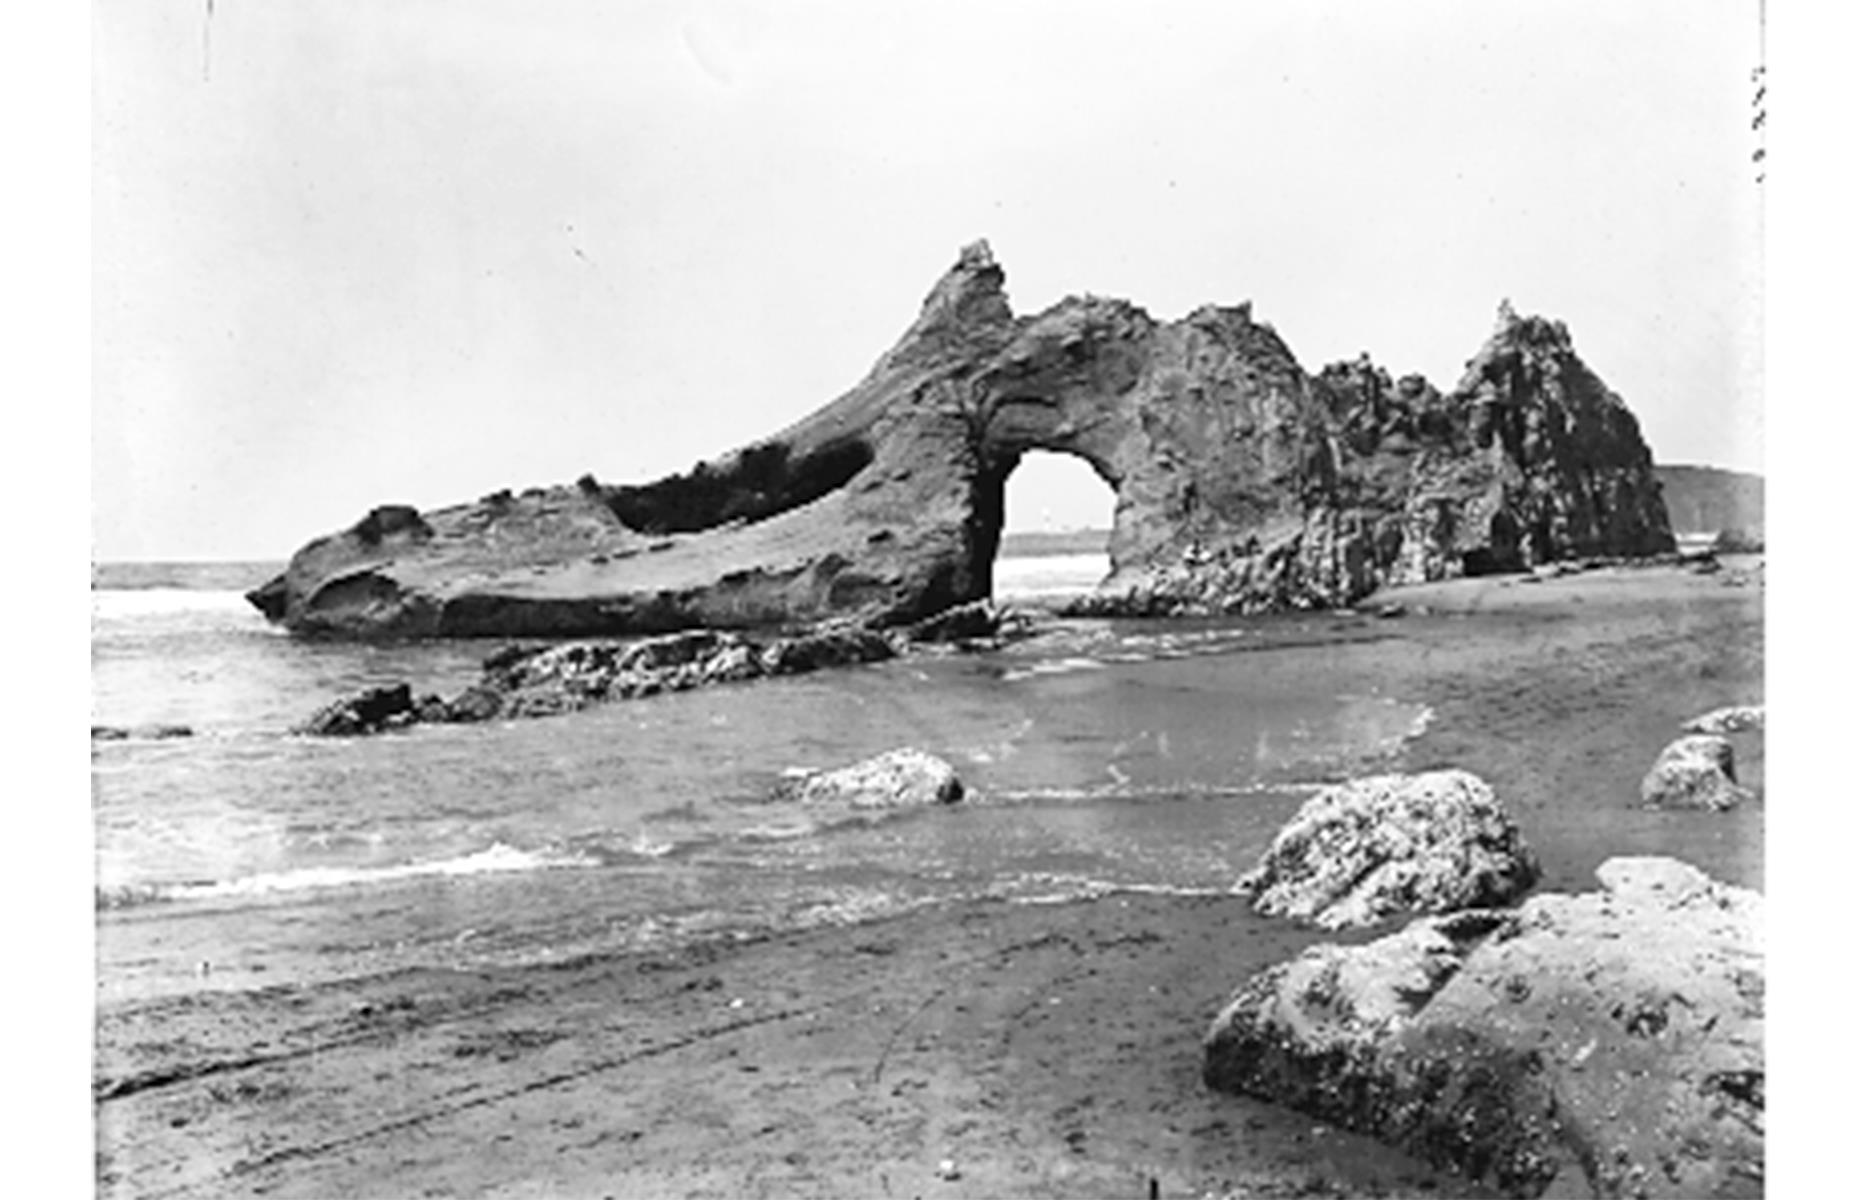 Slide 20 of 31: Jump-Off Joe is another natural Oregon landmark that didn't stand the test of time. The arching sea stack rose just off the shore at Newport's Nye Beach on Oregon's Central Coast and was a popular attraction in the 19th century. It's pictured here in 1910, a mere six years before it crumbled into the sea.